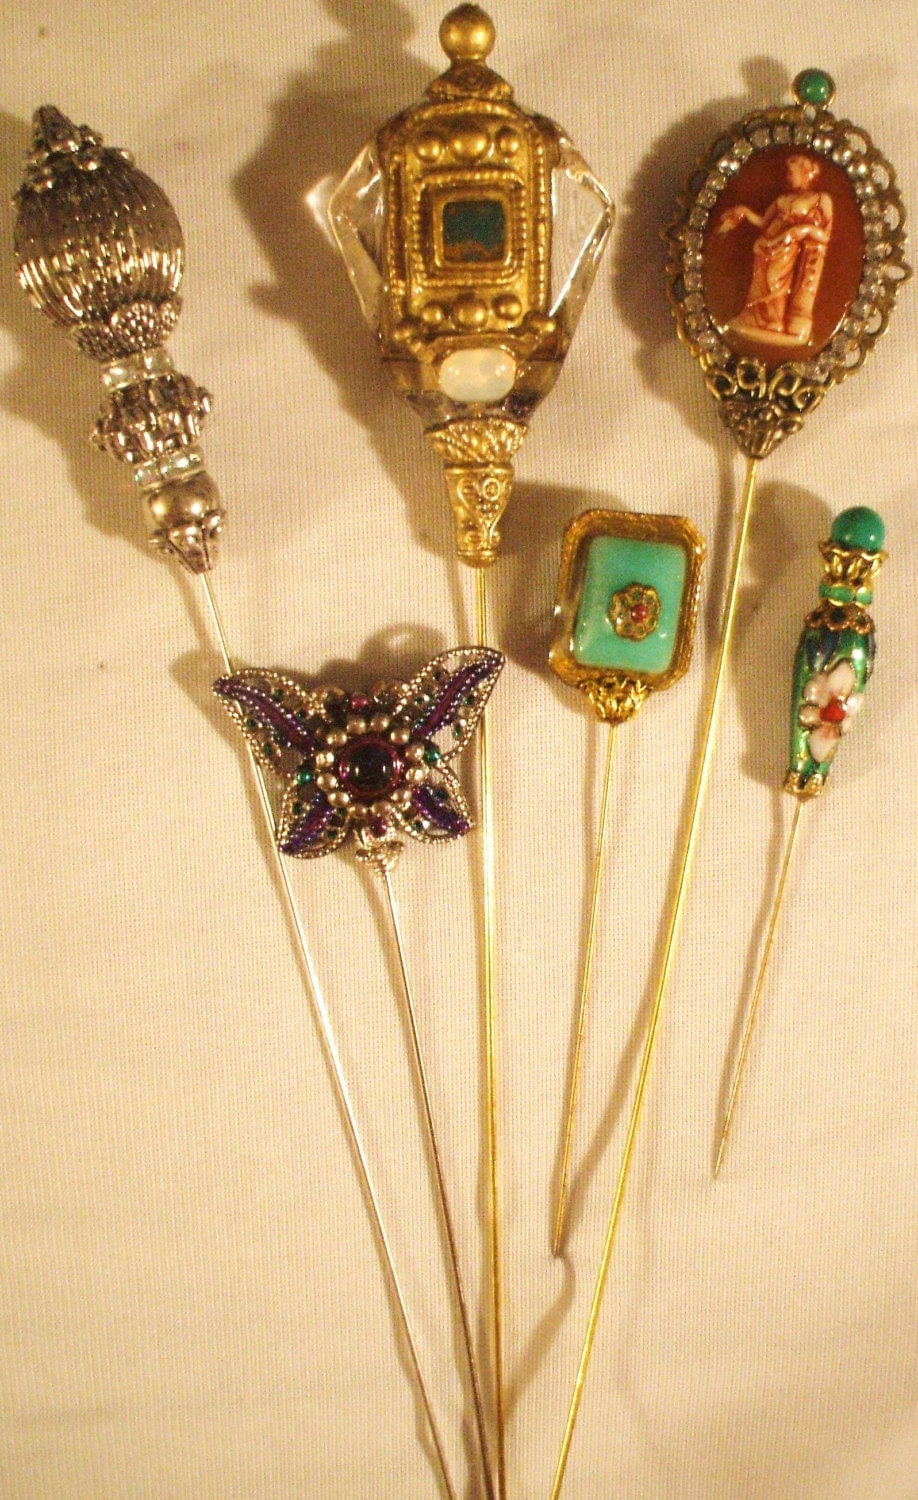 6 Antique style hat pins with vintage and antique pieces